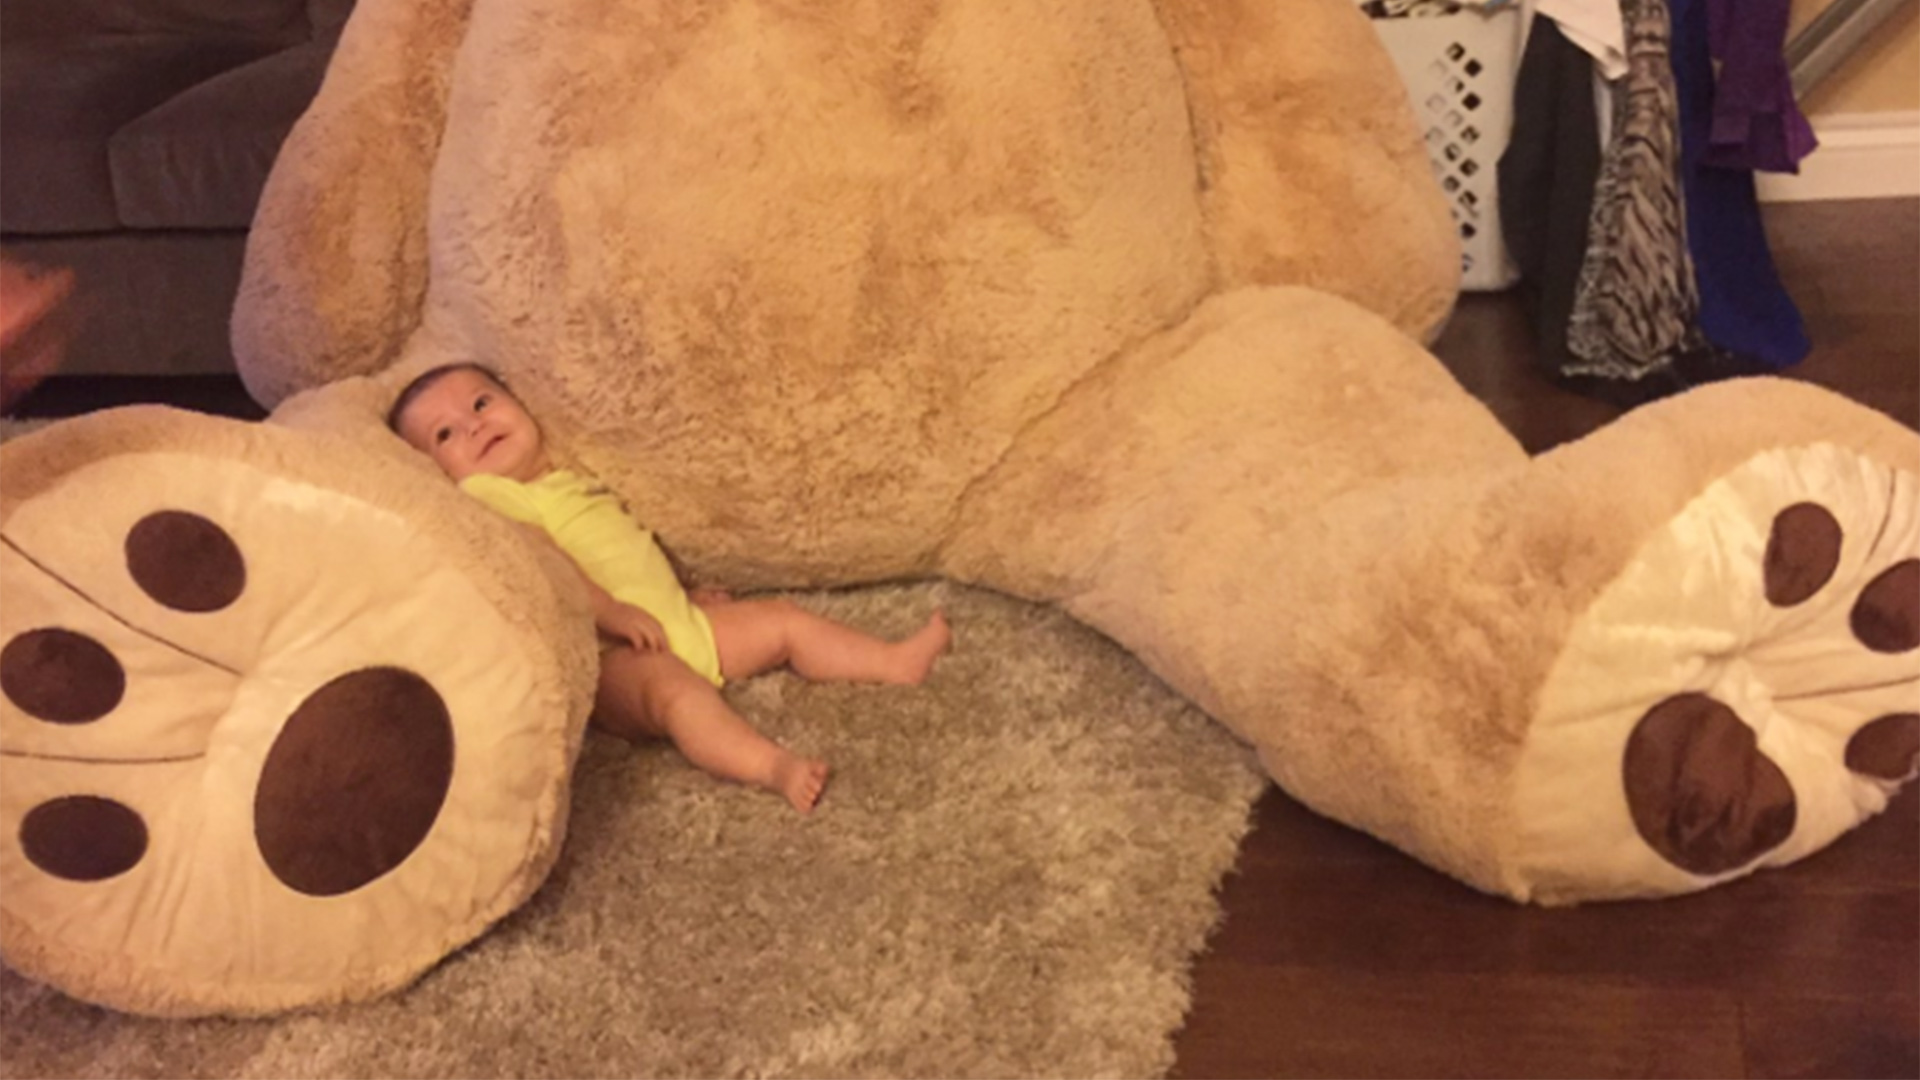 Grandpa buys enormous stuffed bear for 5-month-old granddaughter - TODAY.com